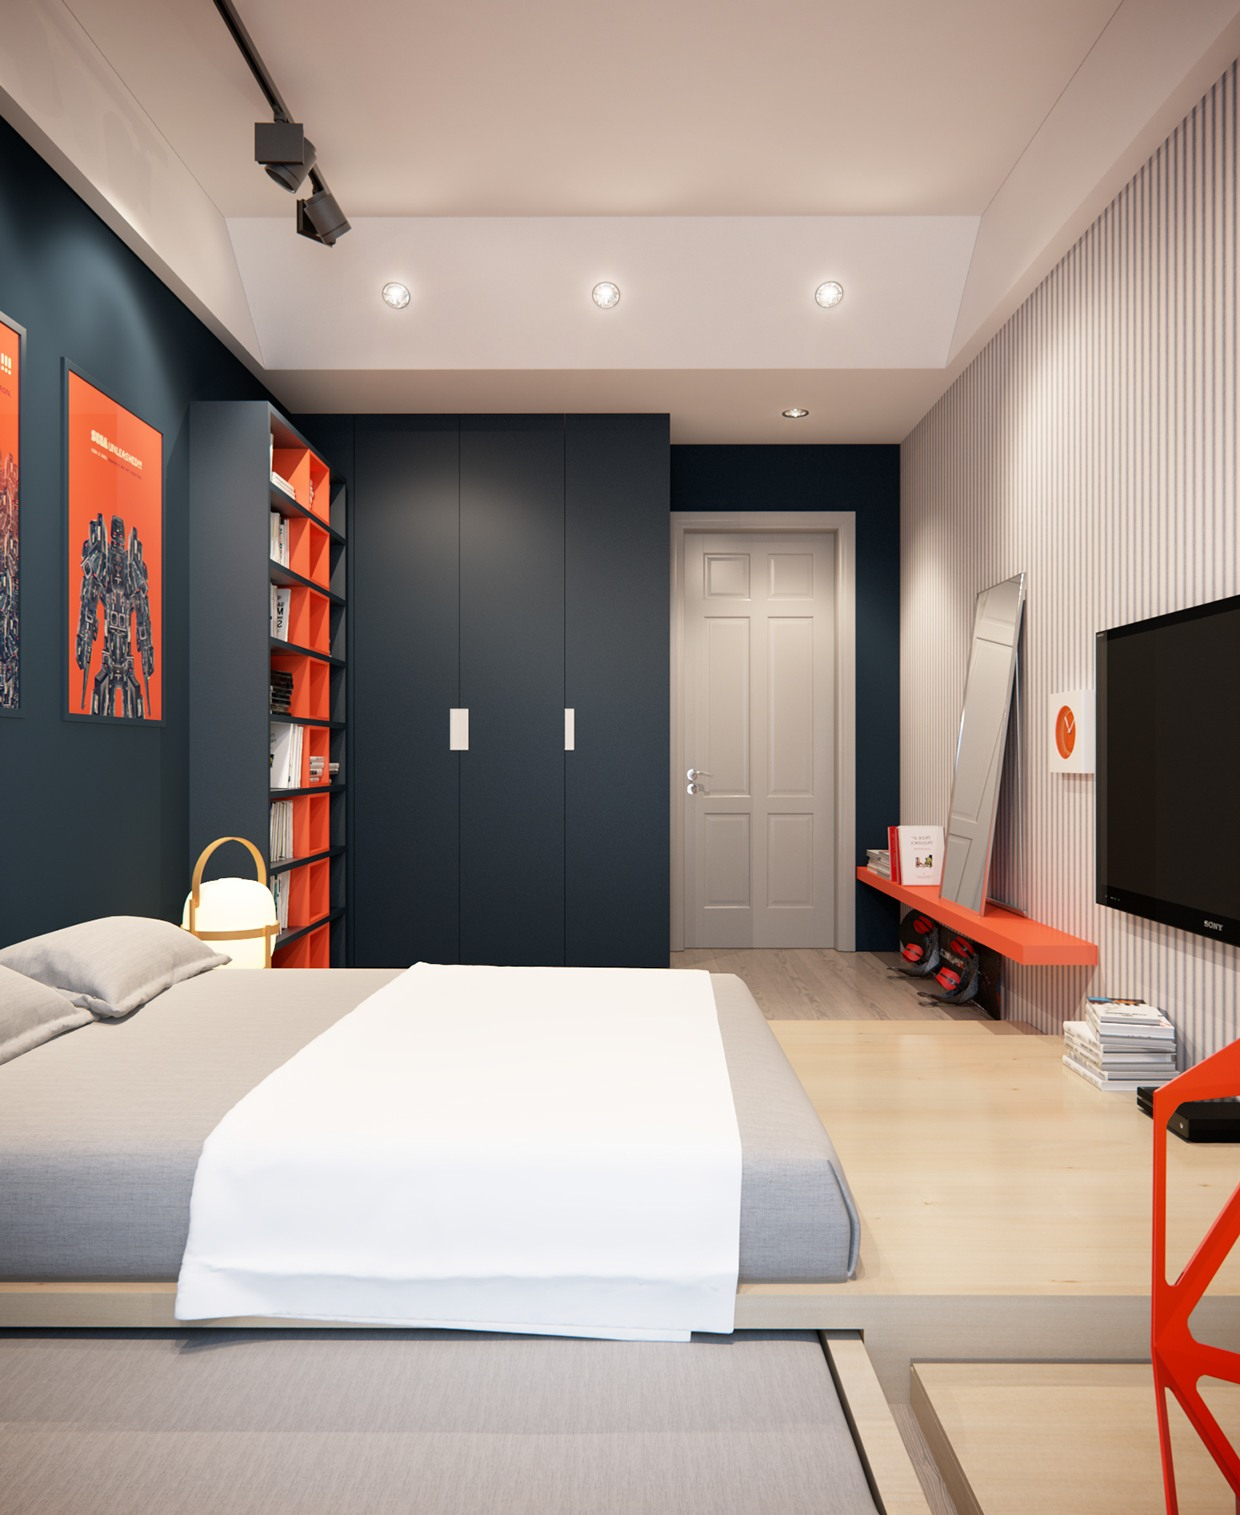 Boys bedroom design interior design ideas for Interior designs bedroom